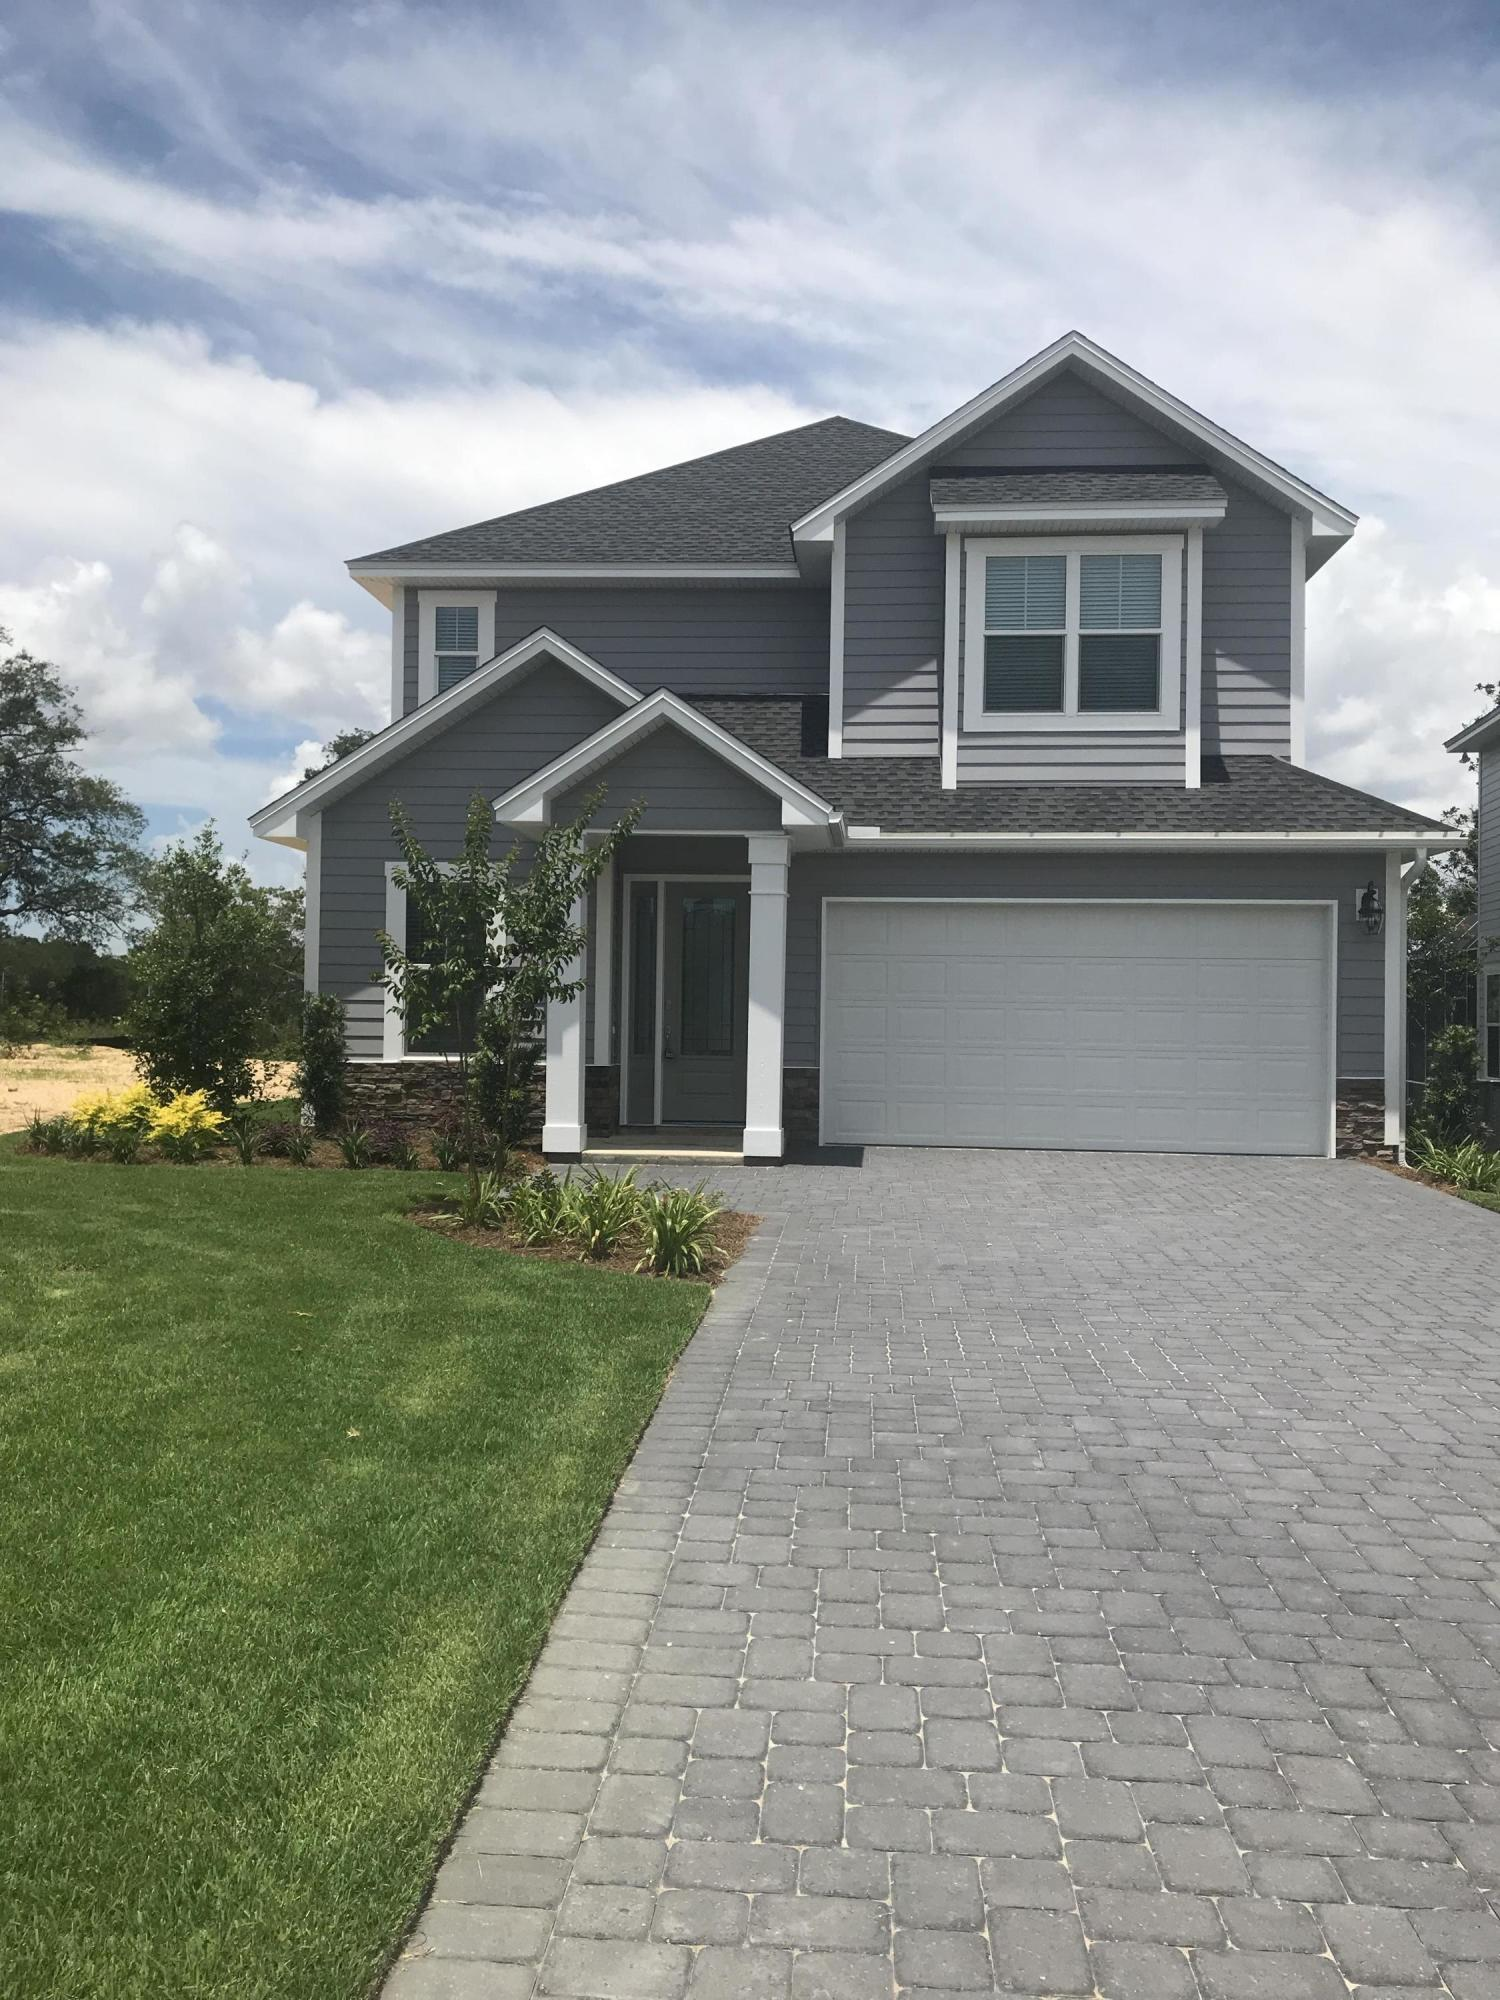 A 4 Bedroom 2 Bedroom Osprey Point Home